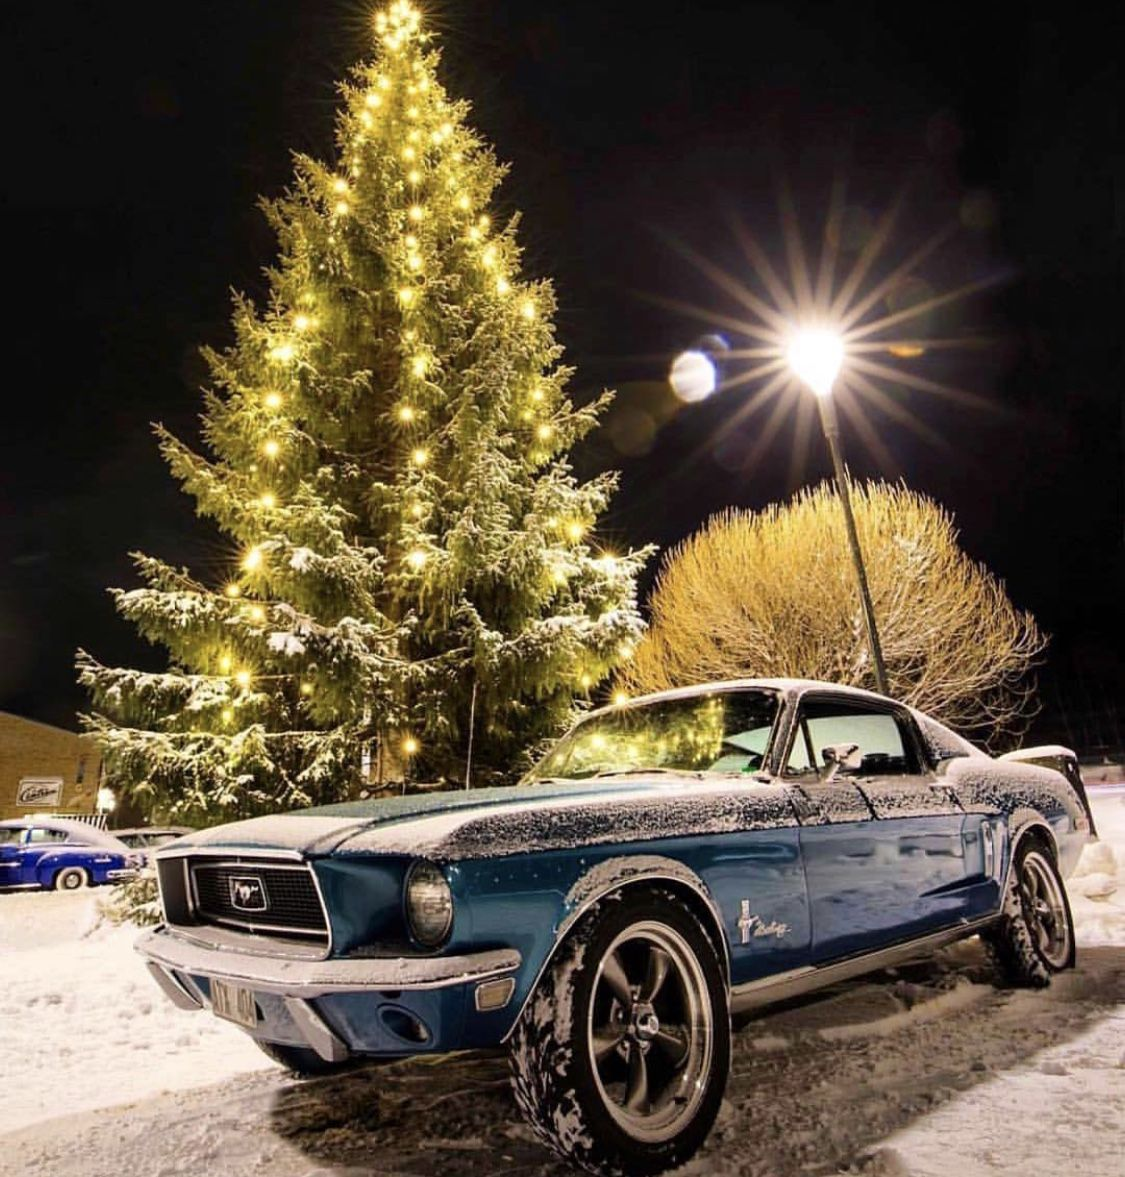 Pin by Robert Rocha on RIDES Mustang, Ford mustang, Riding